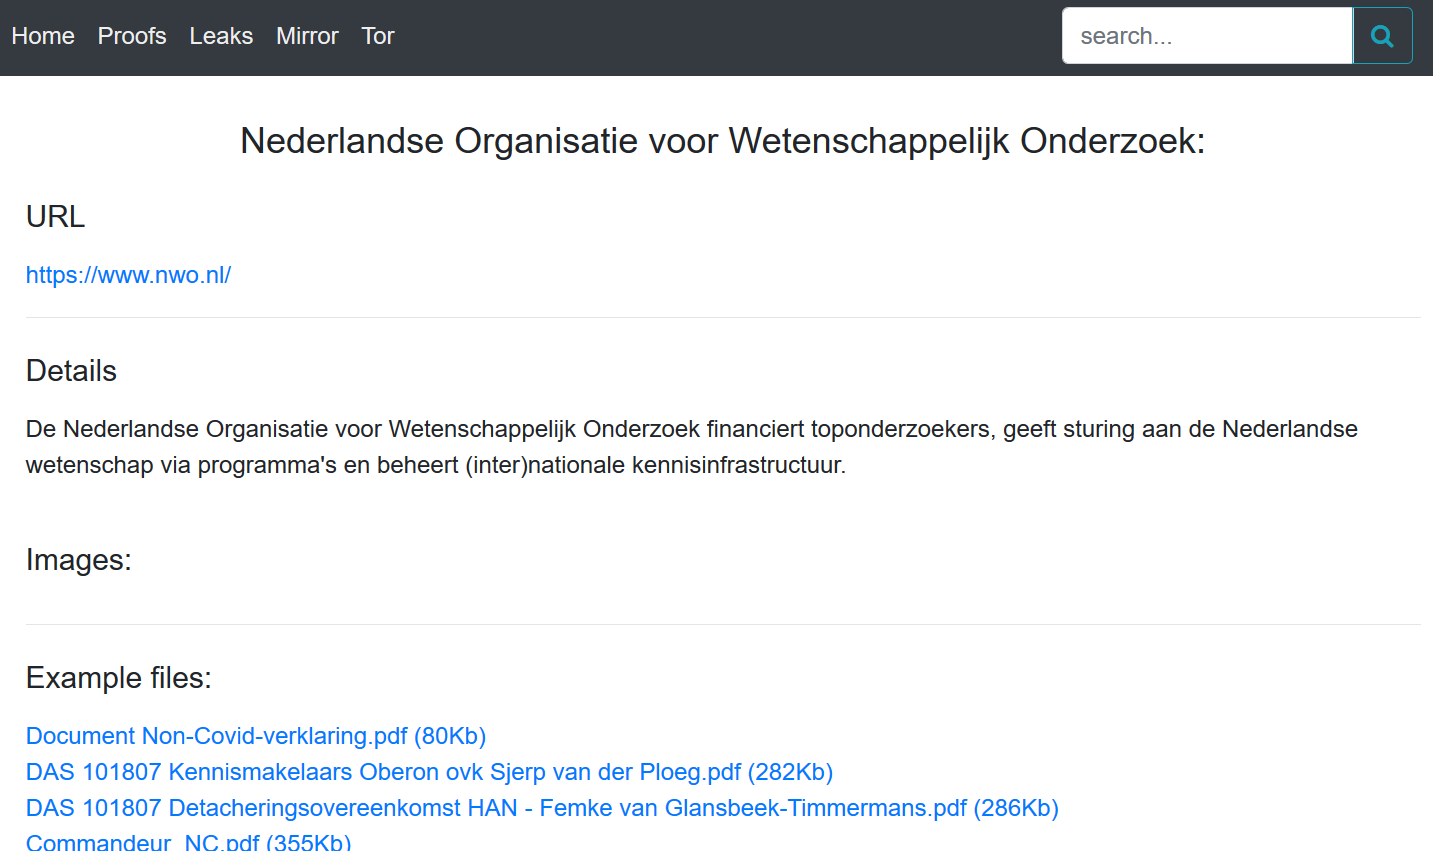 Dutch Research Council (NWO) confirms DoppelPaymer ransomware attack